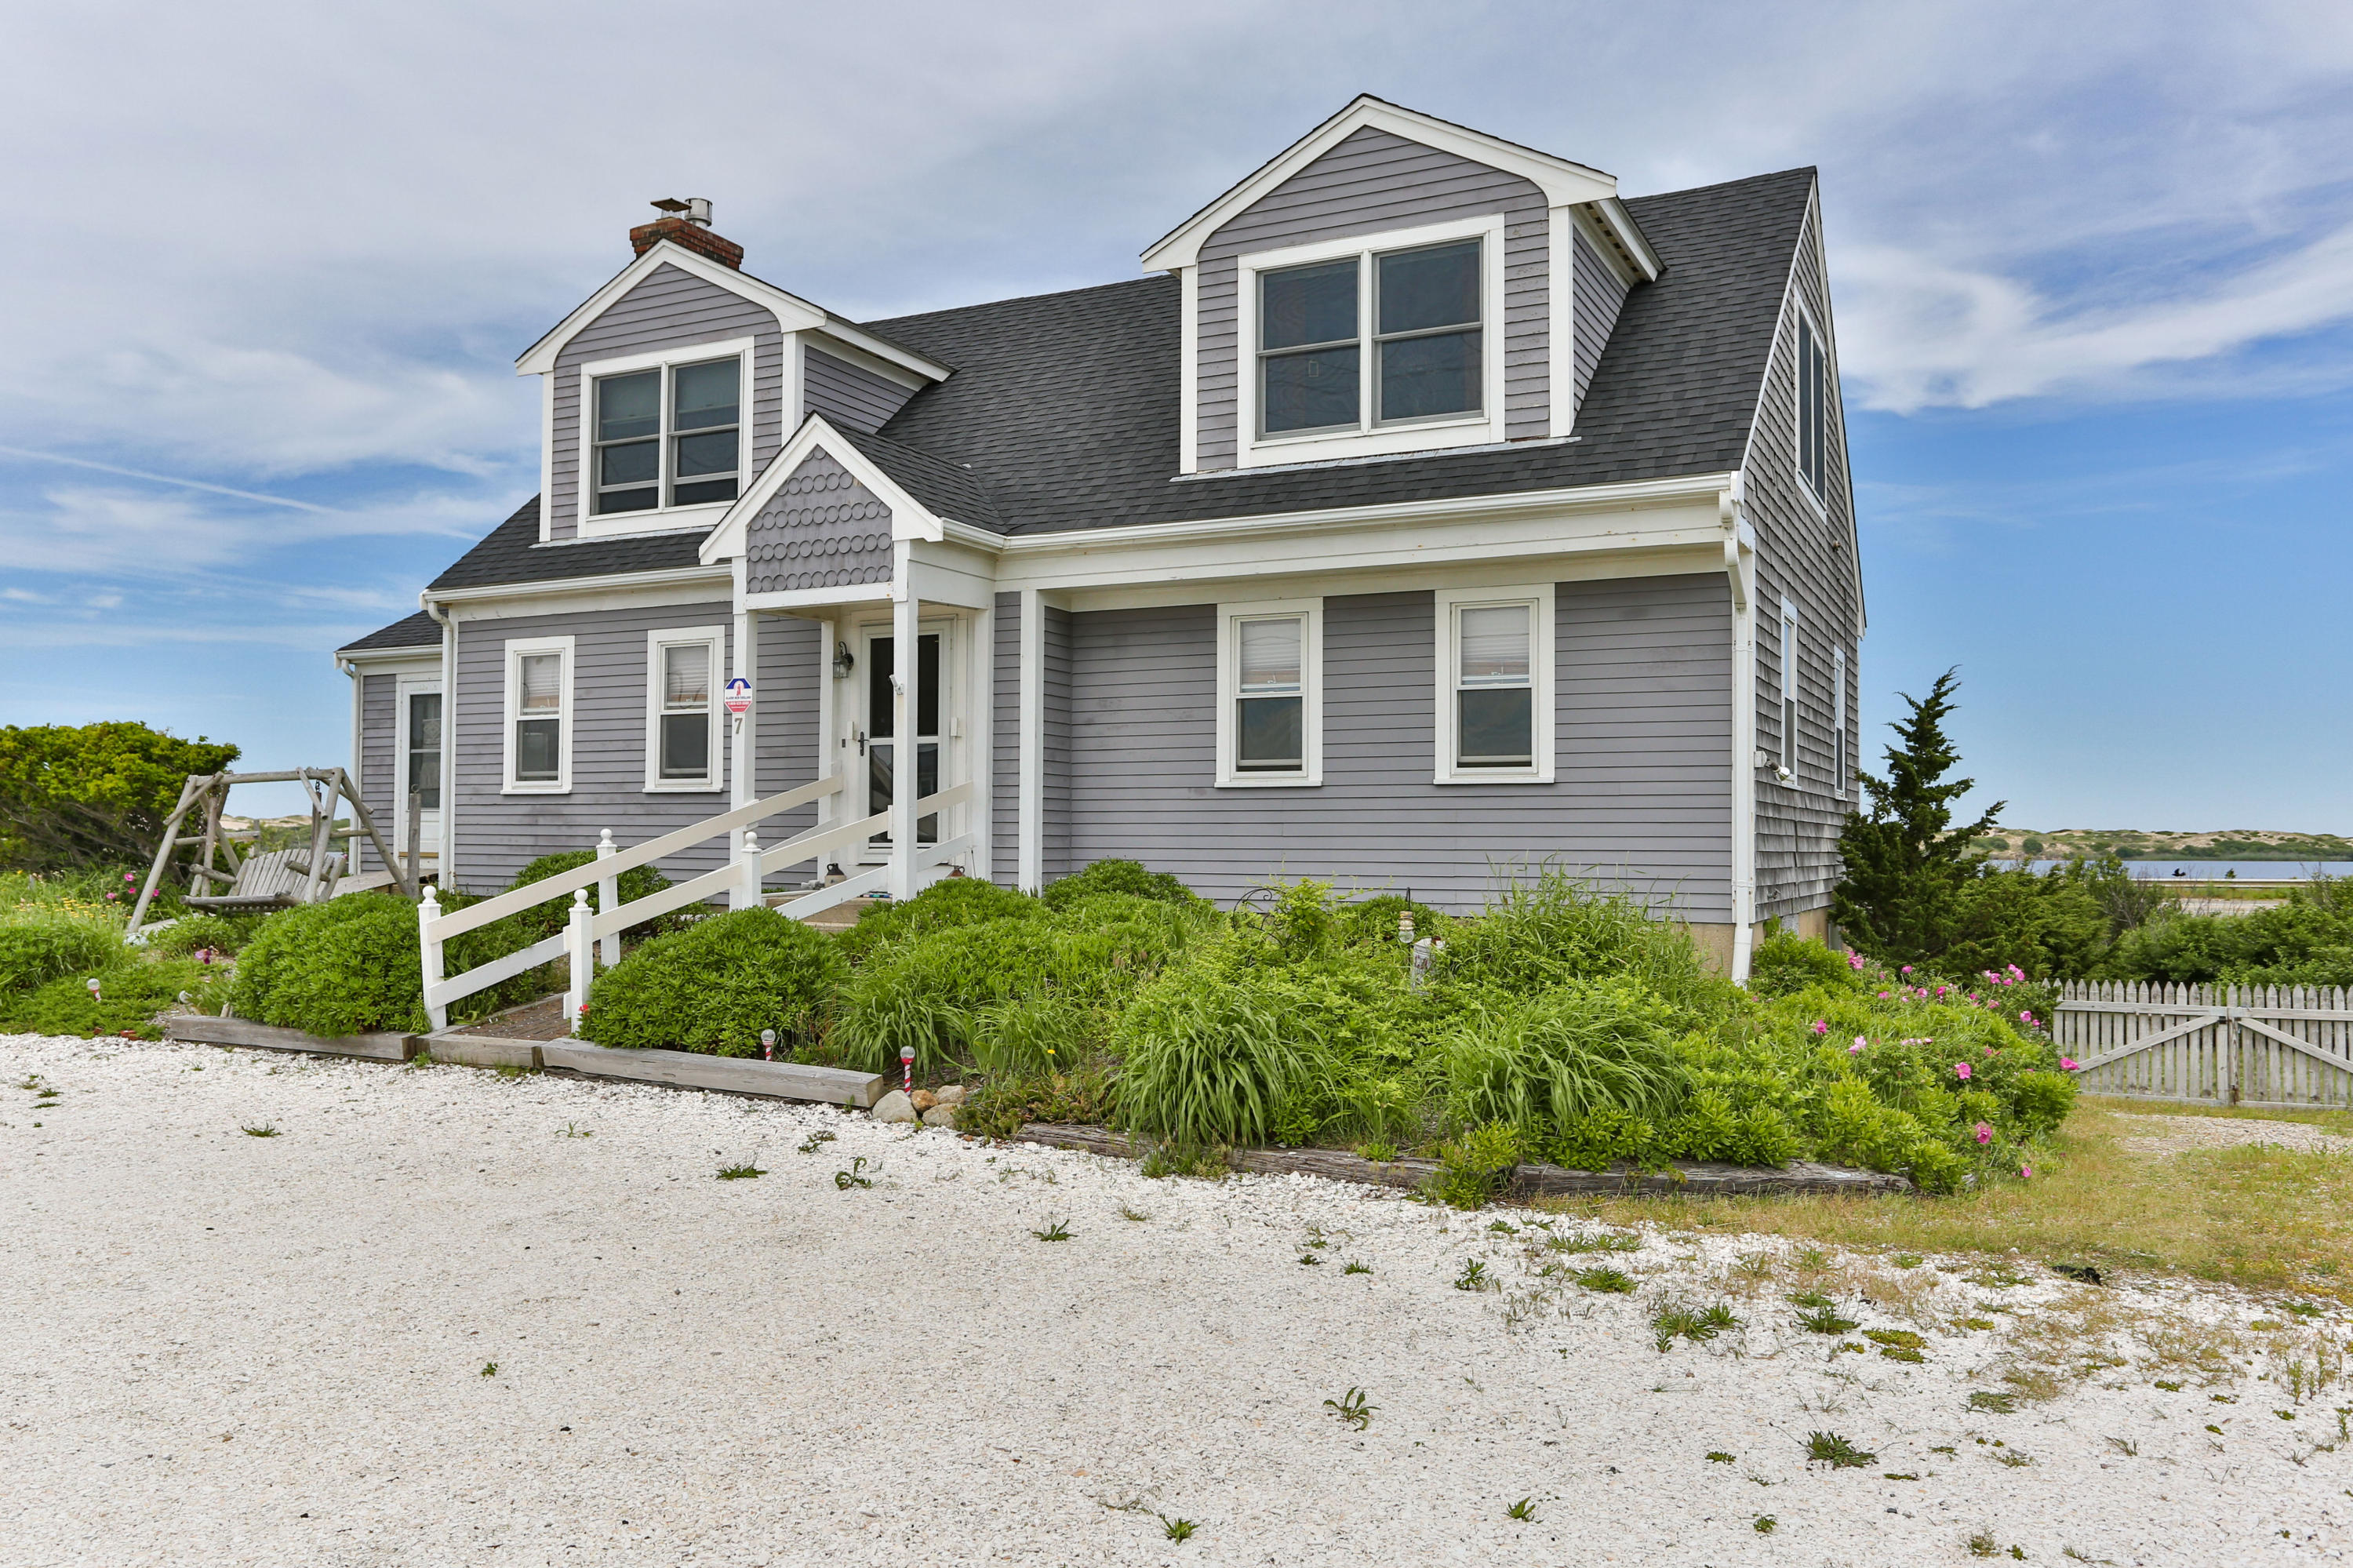 525 Shore Road, North Truro MA, 02652 details